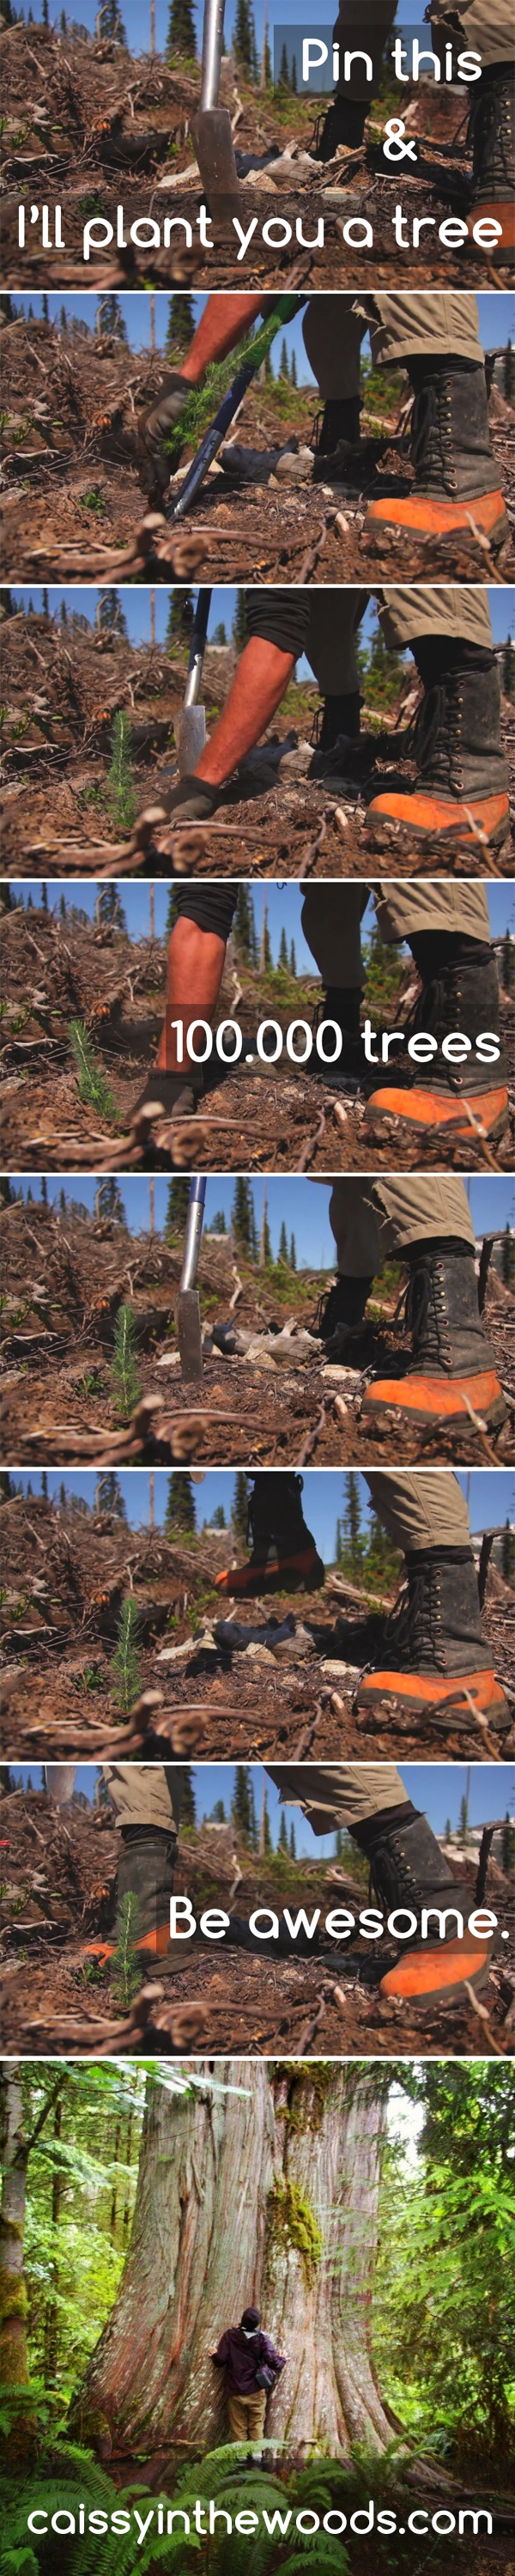 Pin this and I'll plant you a tree! #treeplanting. 100 000 trees to be more exact! #initiative #outdoor #green #soil #nature #tree: Fav Pin, Outdoor Green, Exact, Initials Outdoor, 100 000, 000 Trees, Natural Trees, Green Soil, Illness Plants